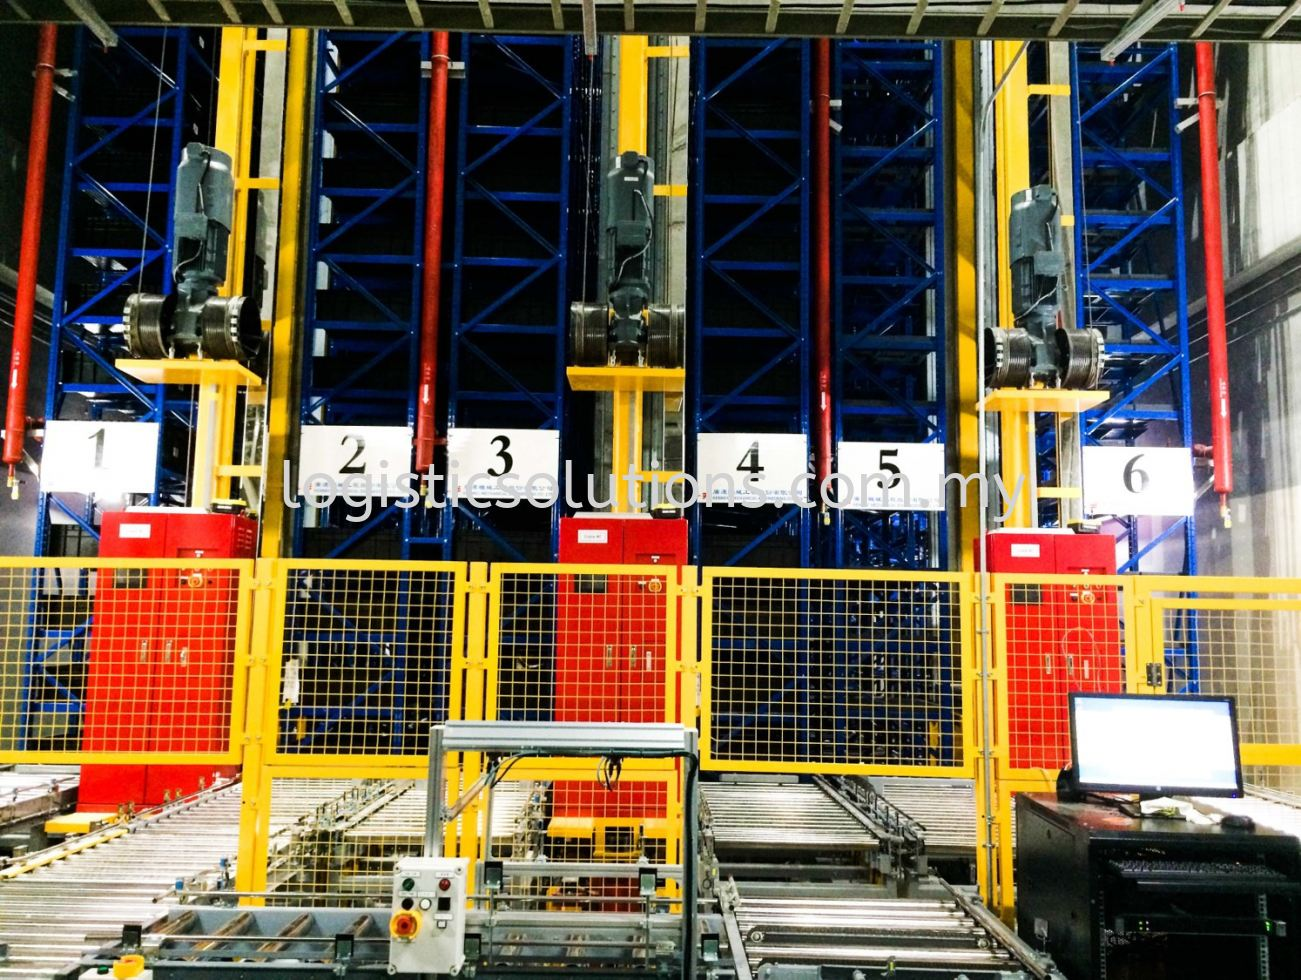 Automated Storage Retrieval System ASRS